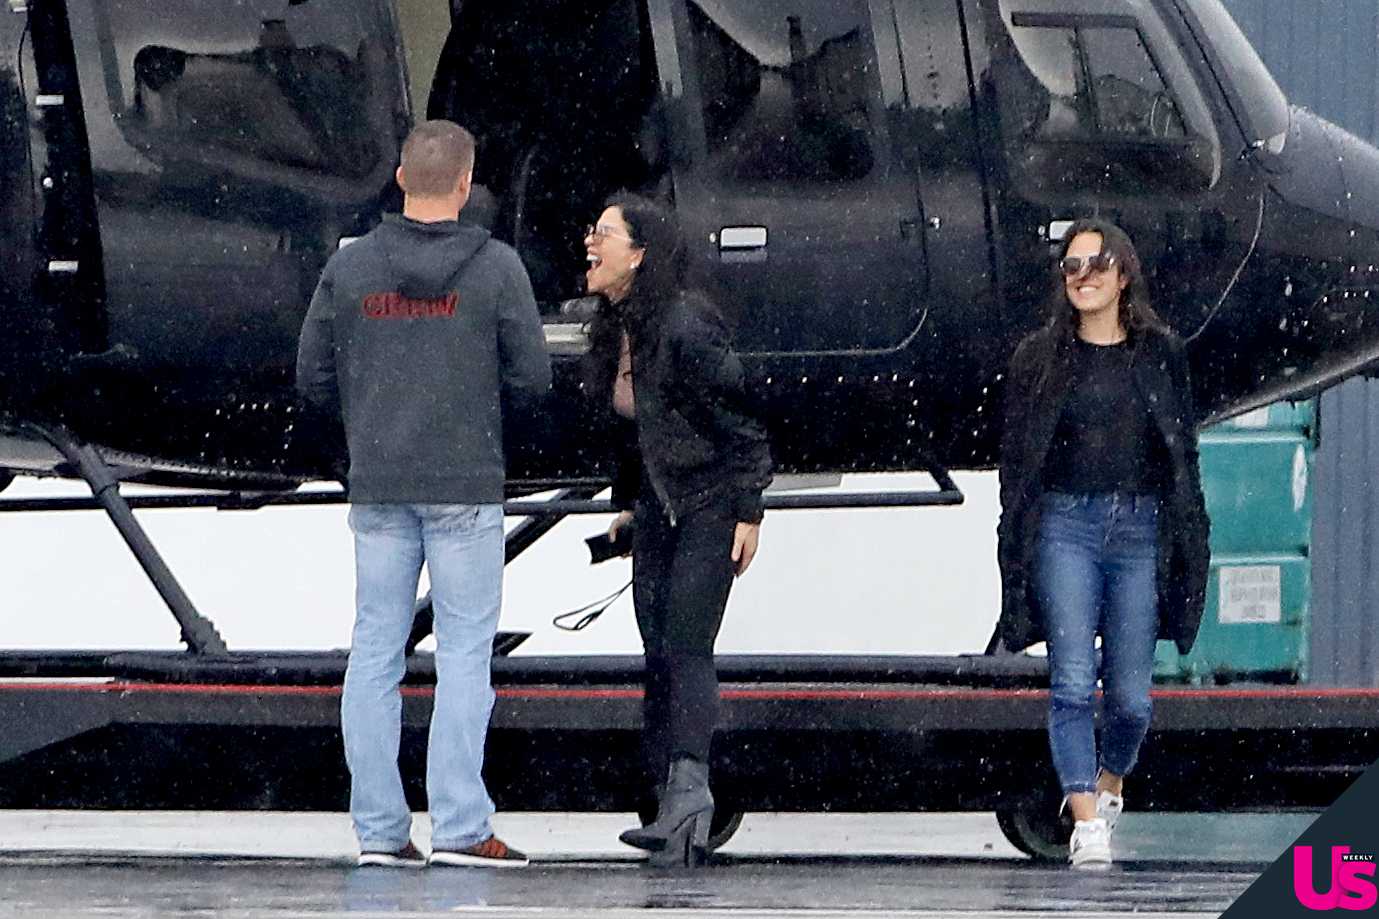 Lauren-Sanchez-Steps-Out-Jeff-Bezos-Affair - Sánchez let out a laugh as she appeared to inspect the helicopter.